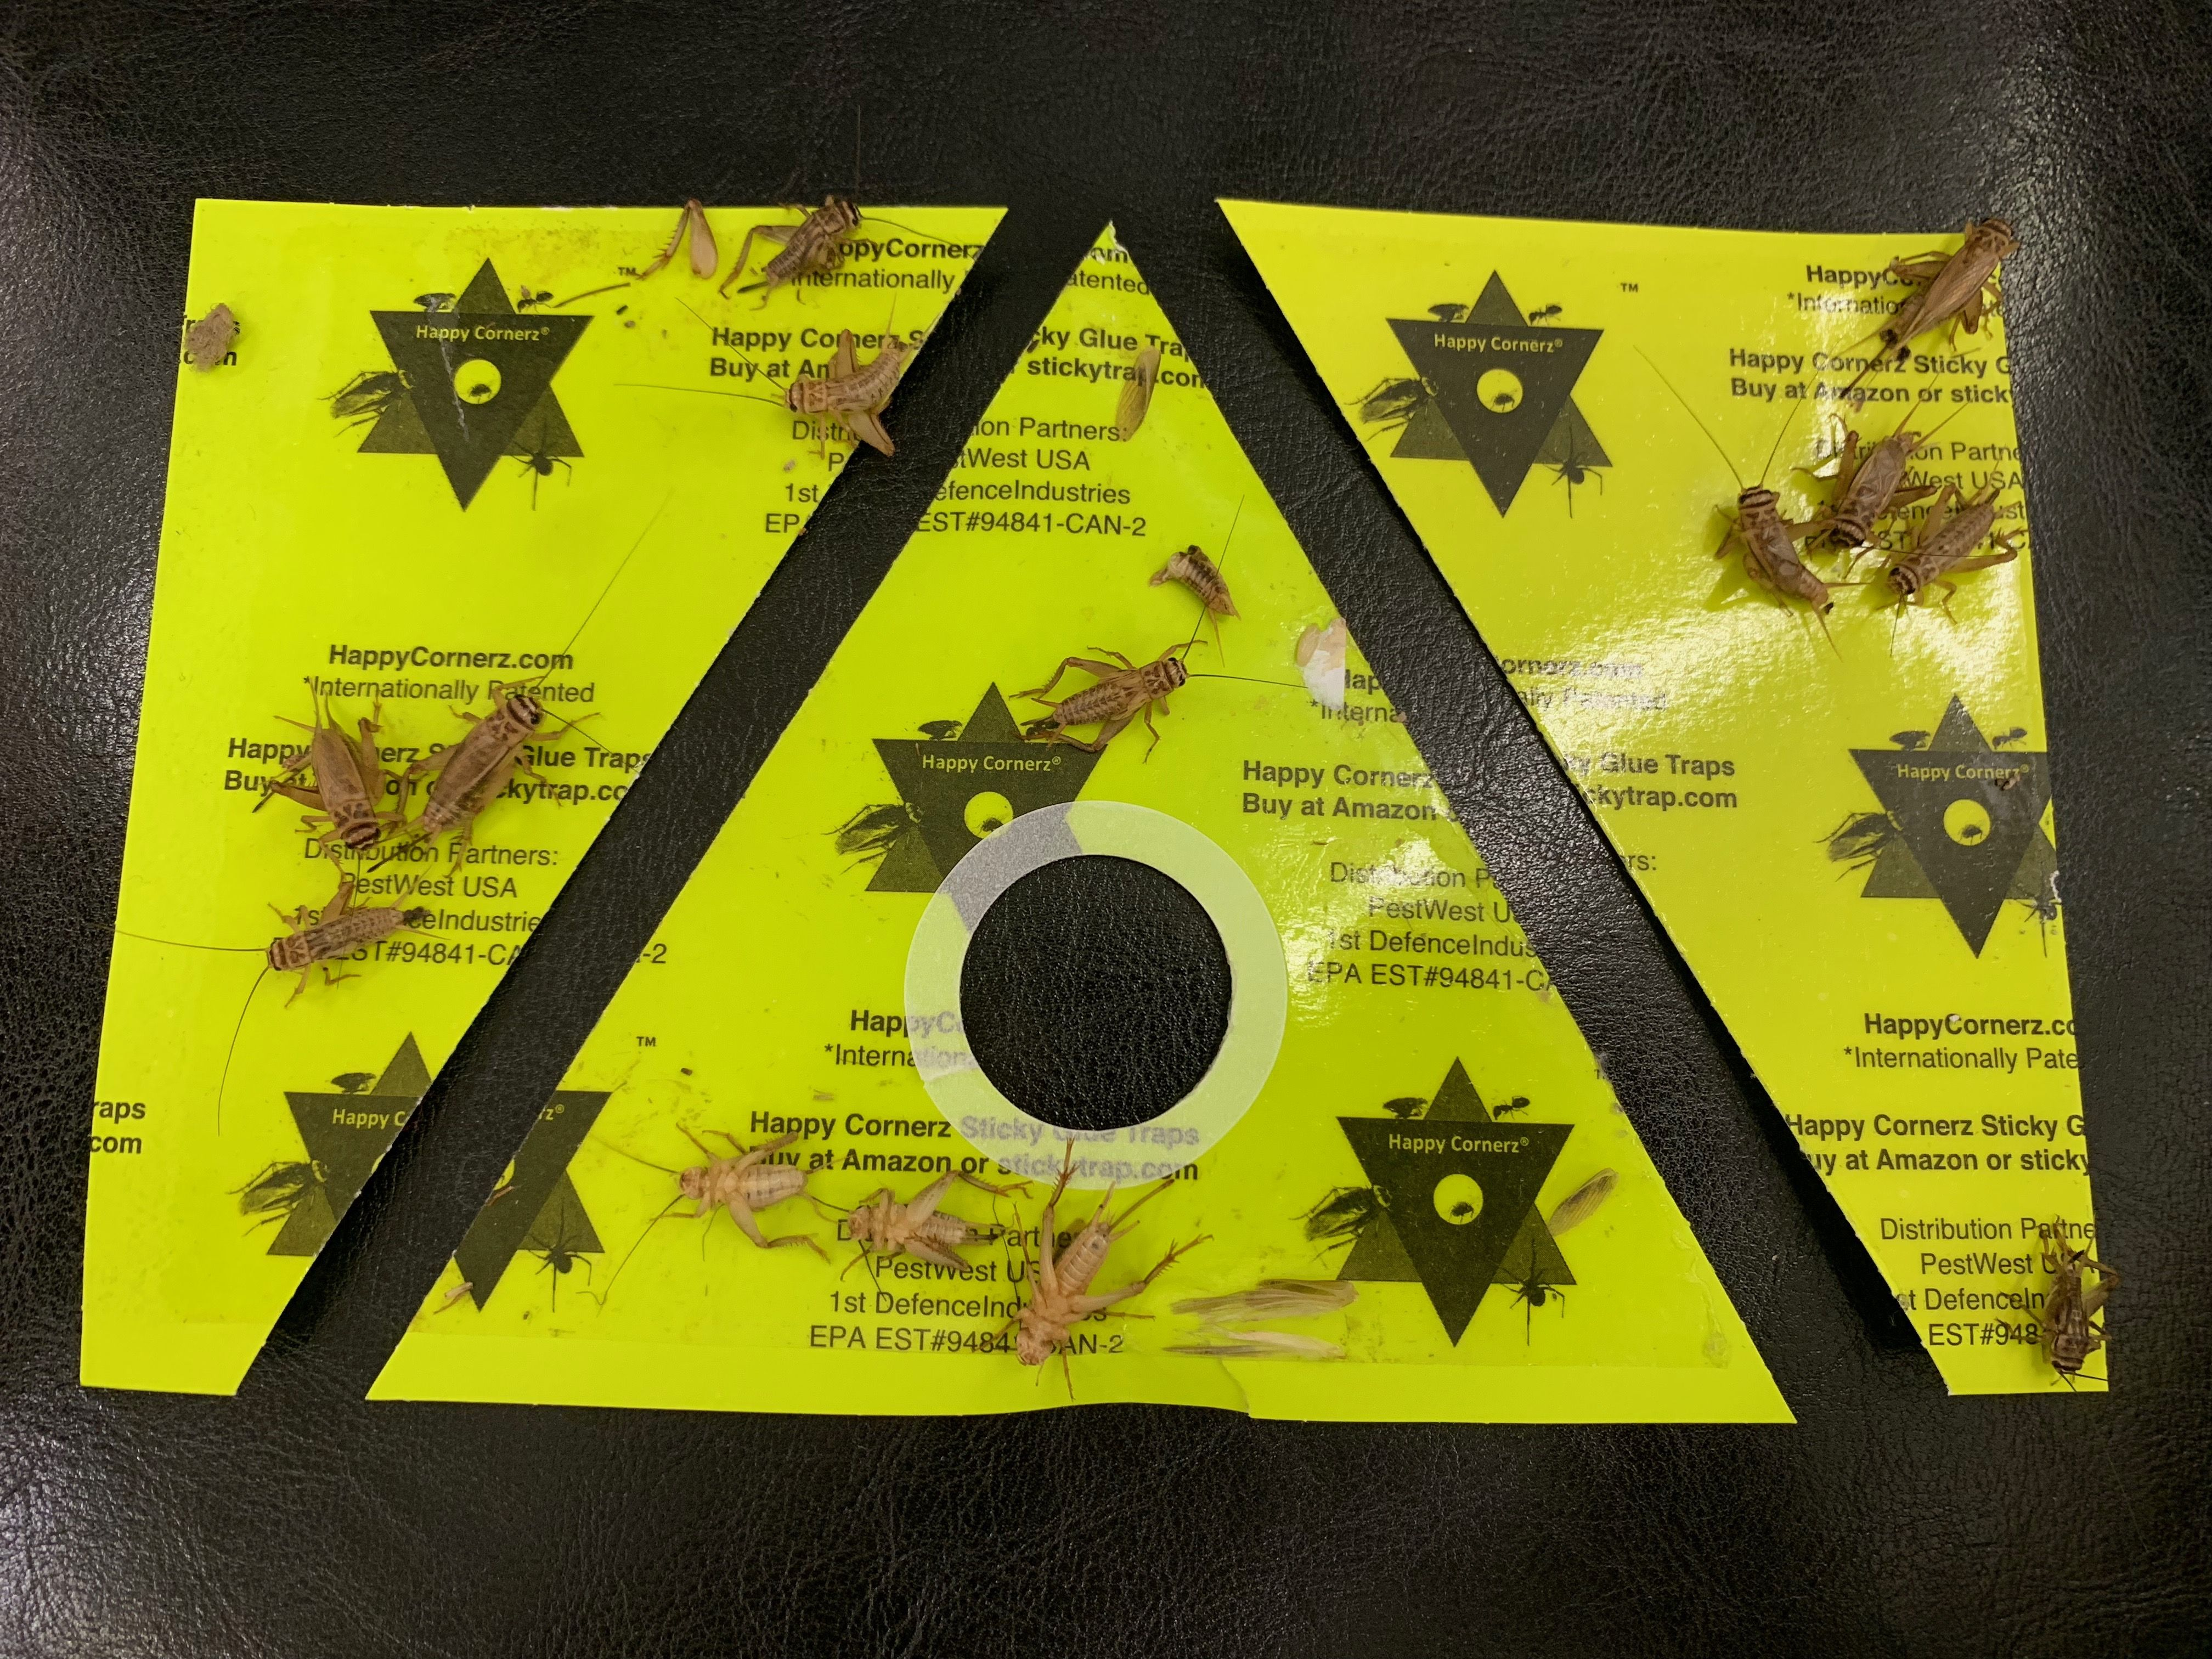 Are you a DIY person? Get Happy Cornerz Sticky Traps to